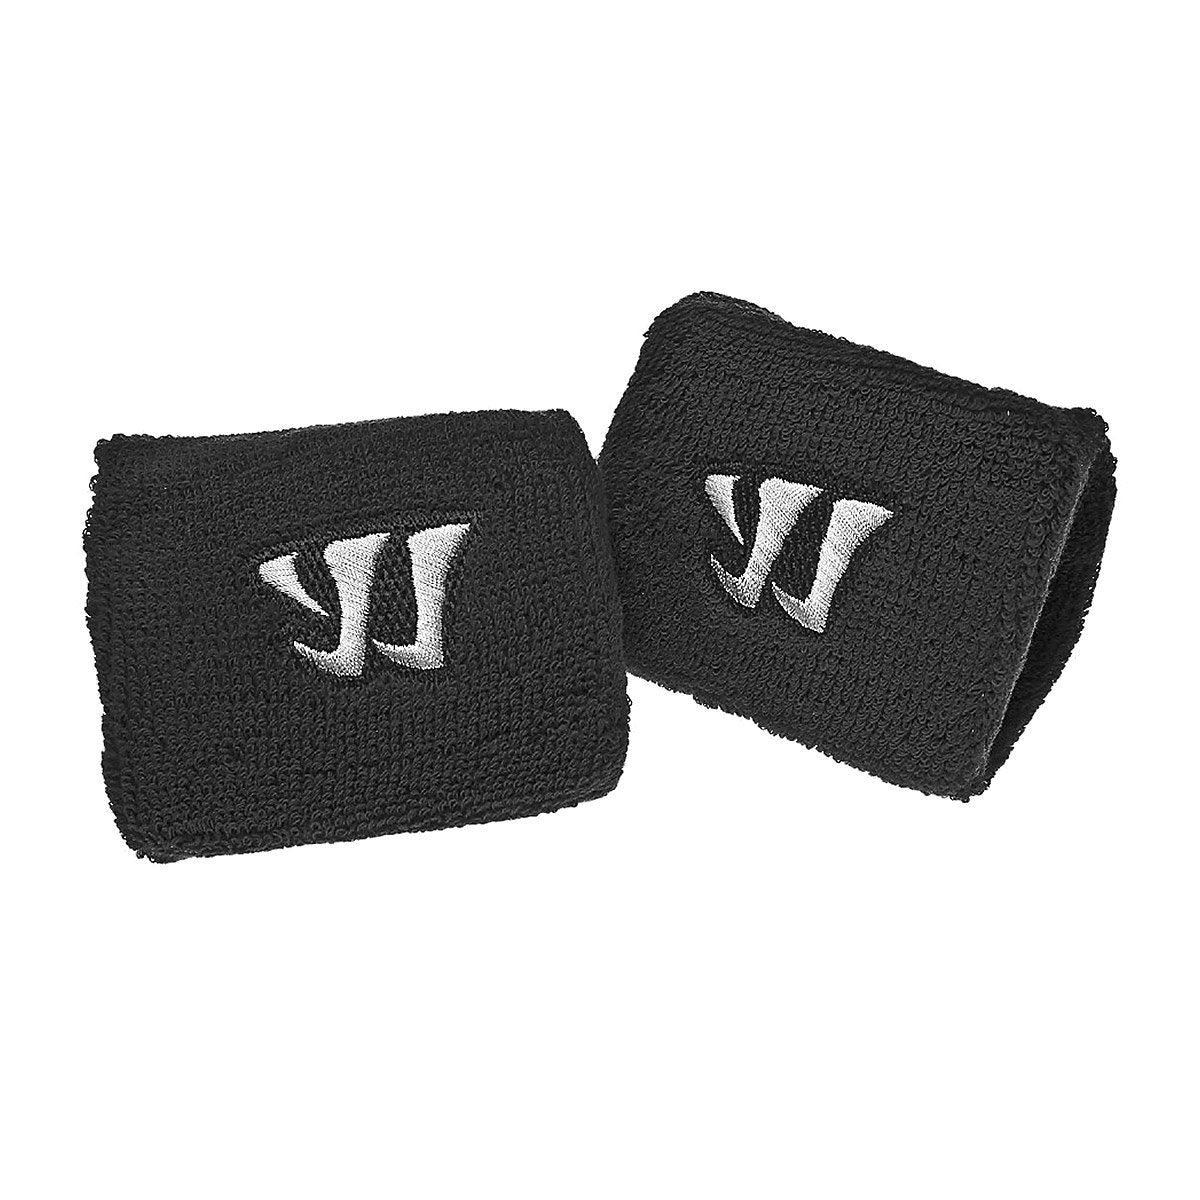 Warrior Cuff Wrist Guards